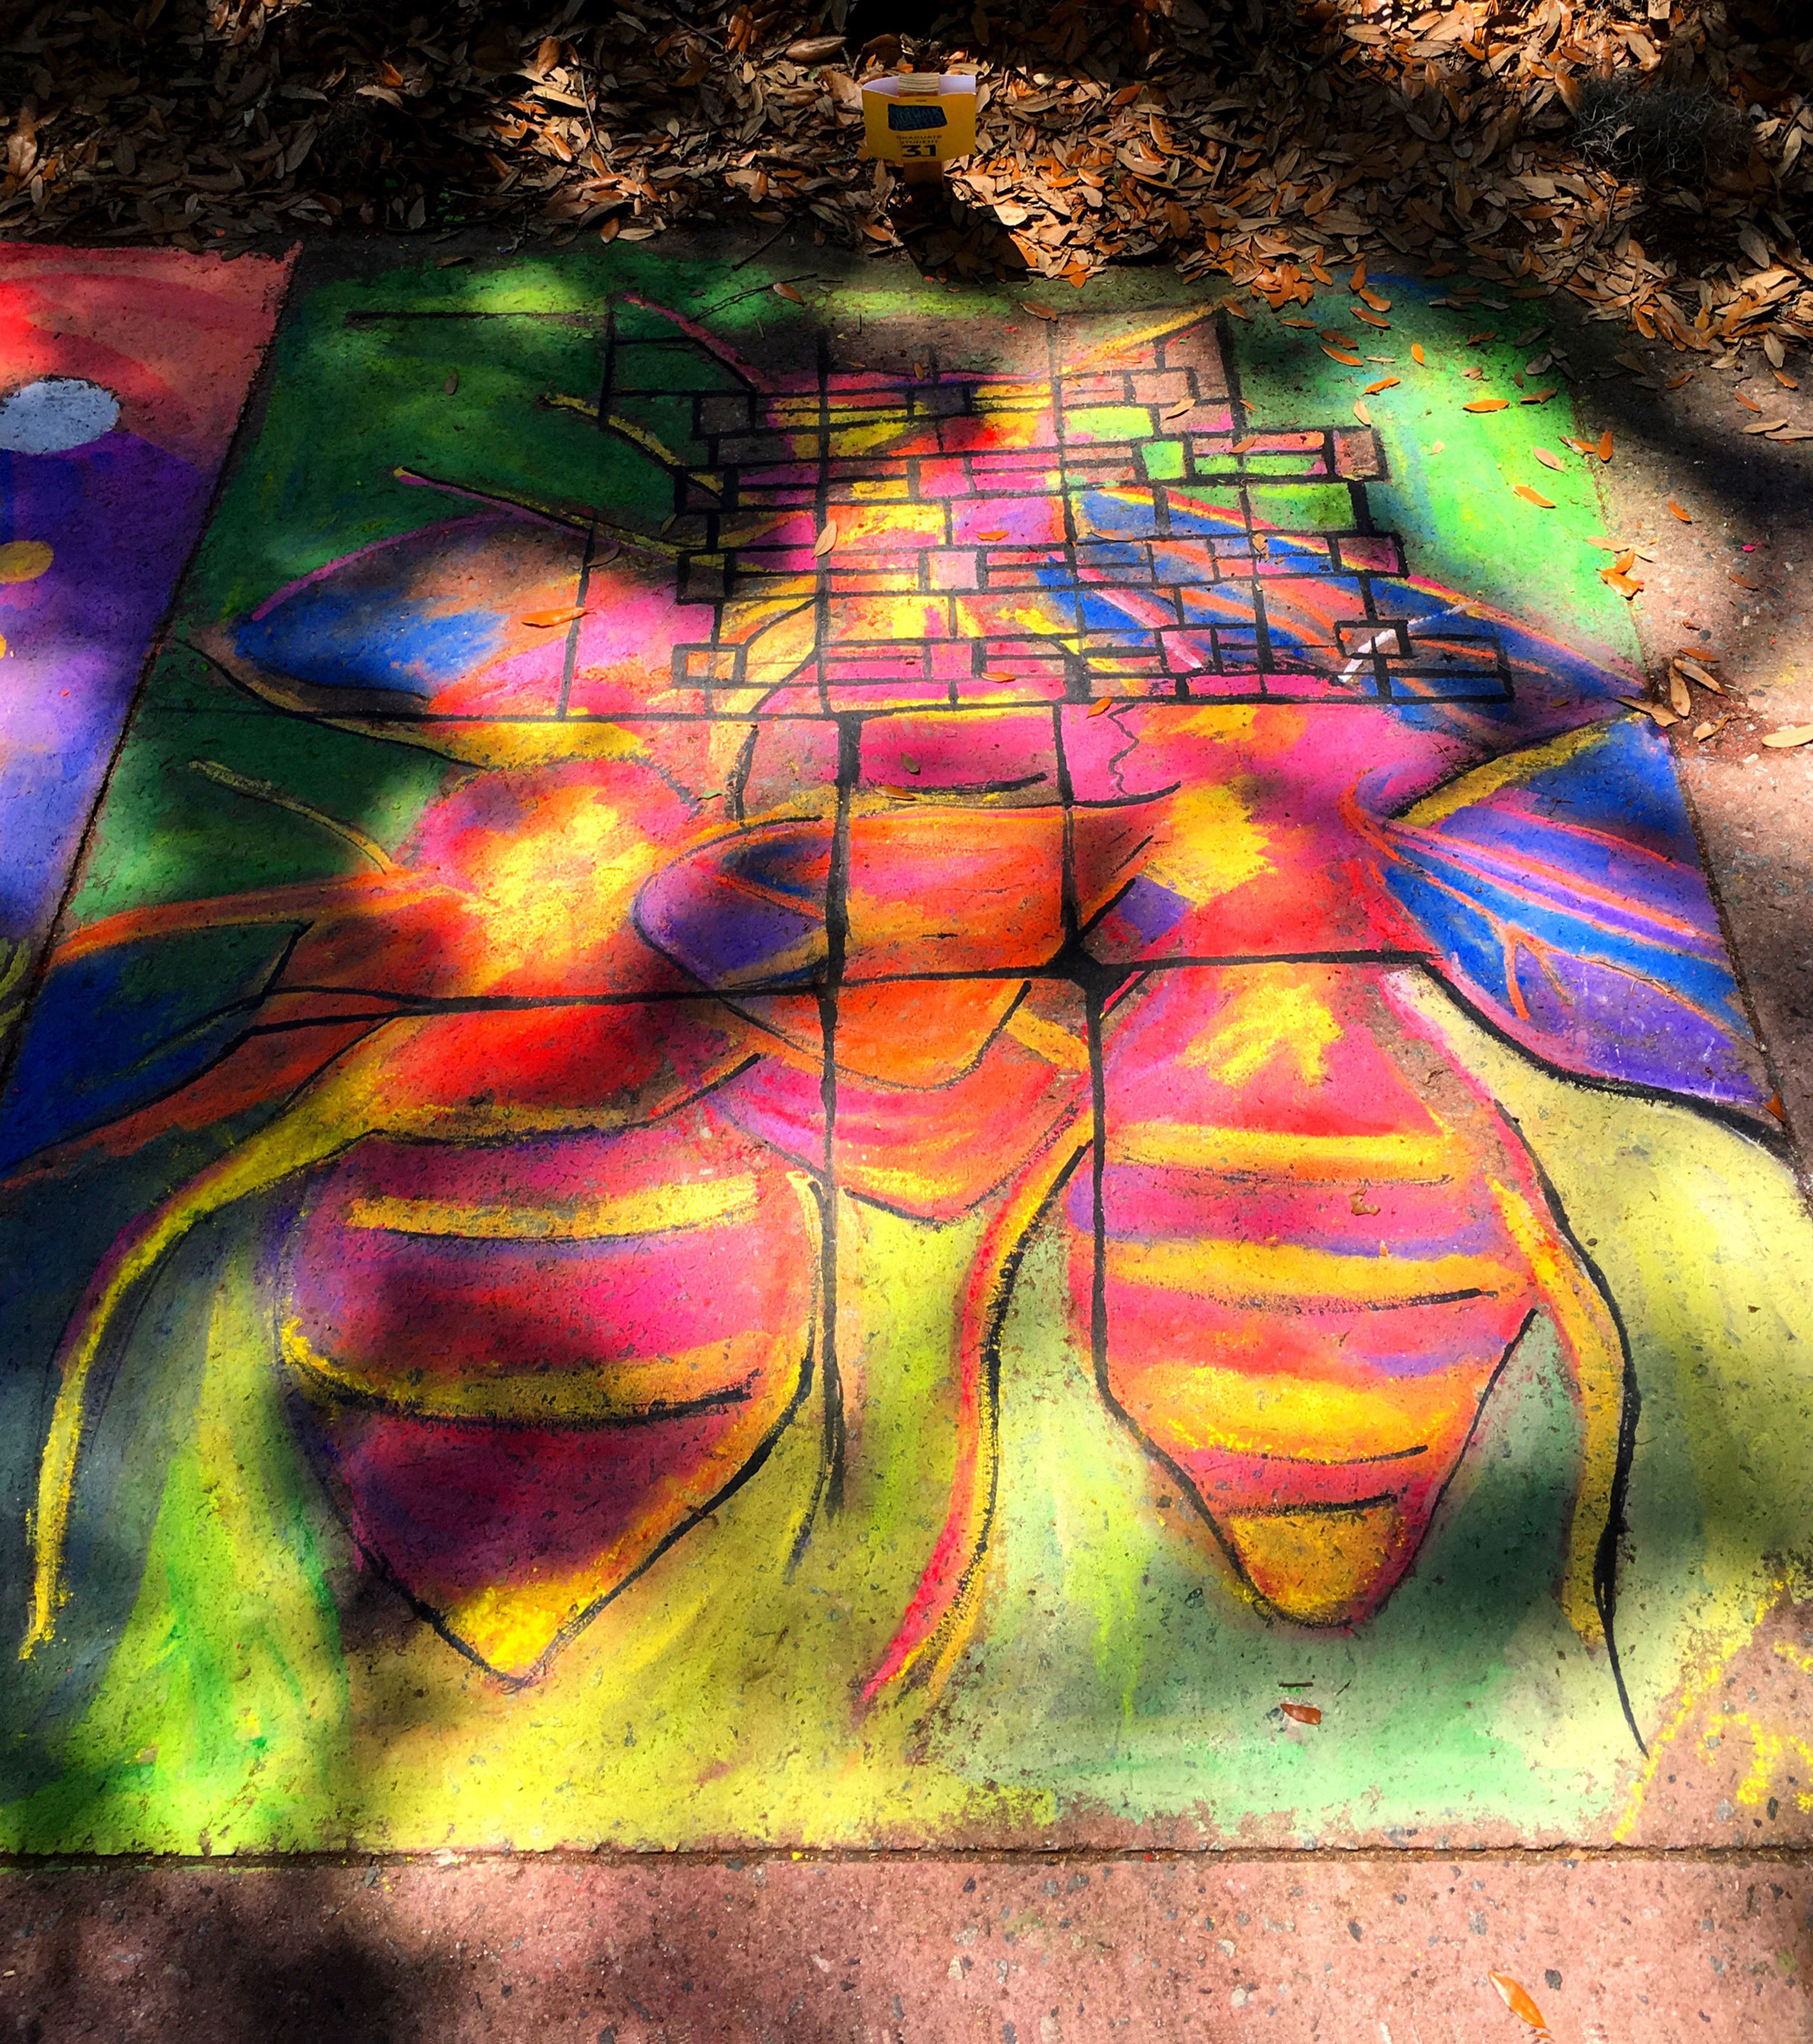 - Neon honey bees and a city map. It was a long day and my hands were stained, but it was so great to see Forsyth Park come to life with so many decorated sidewalk squares! Until next year.